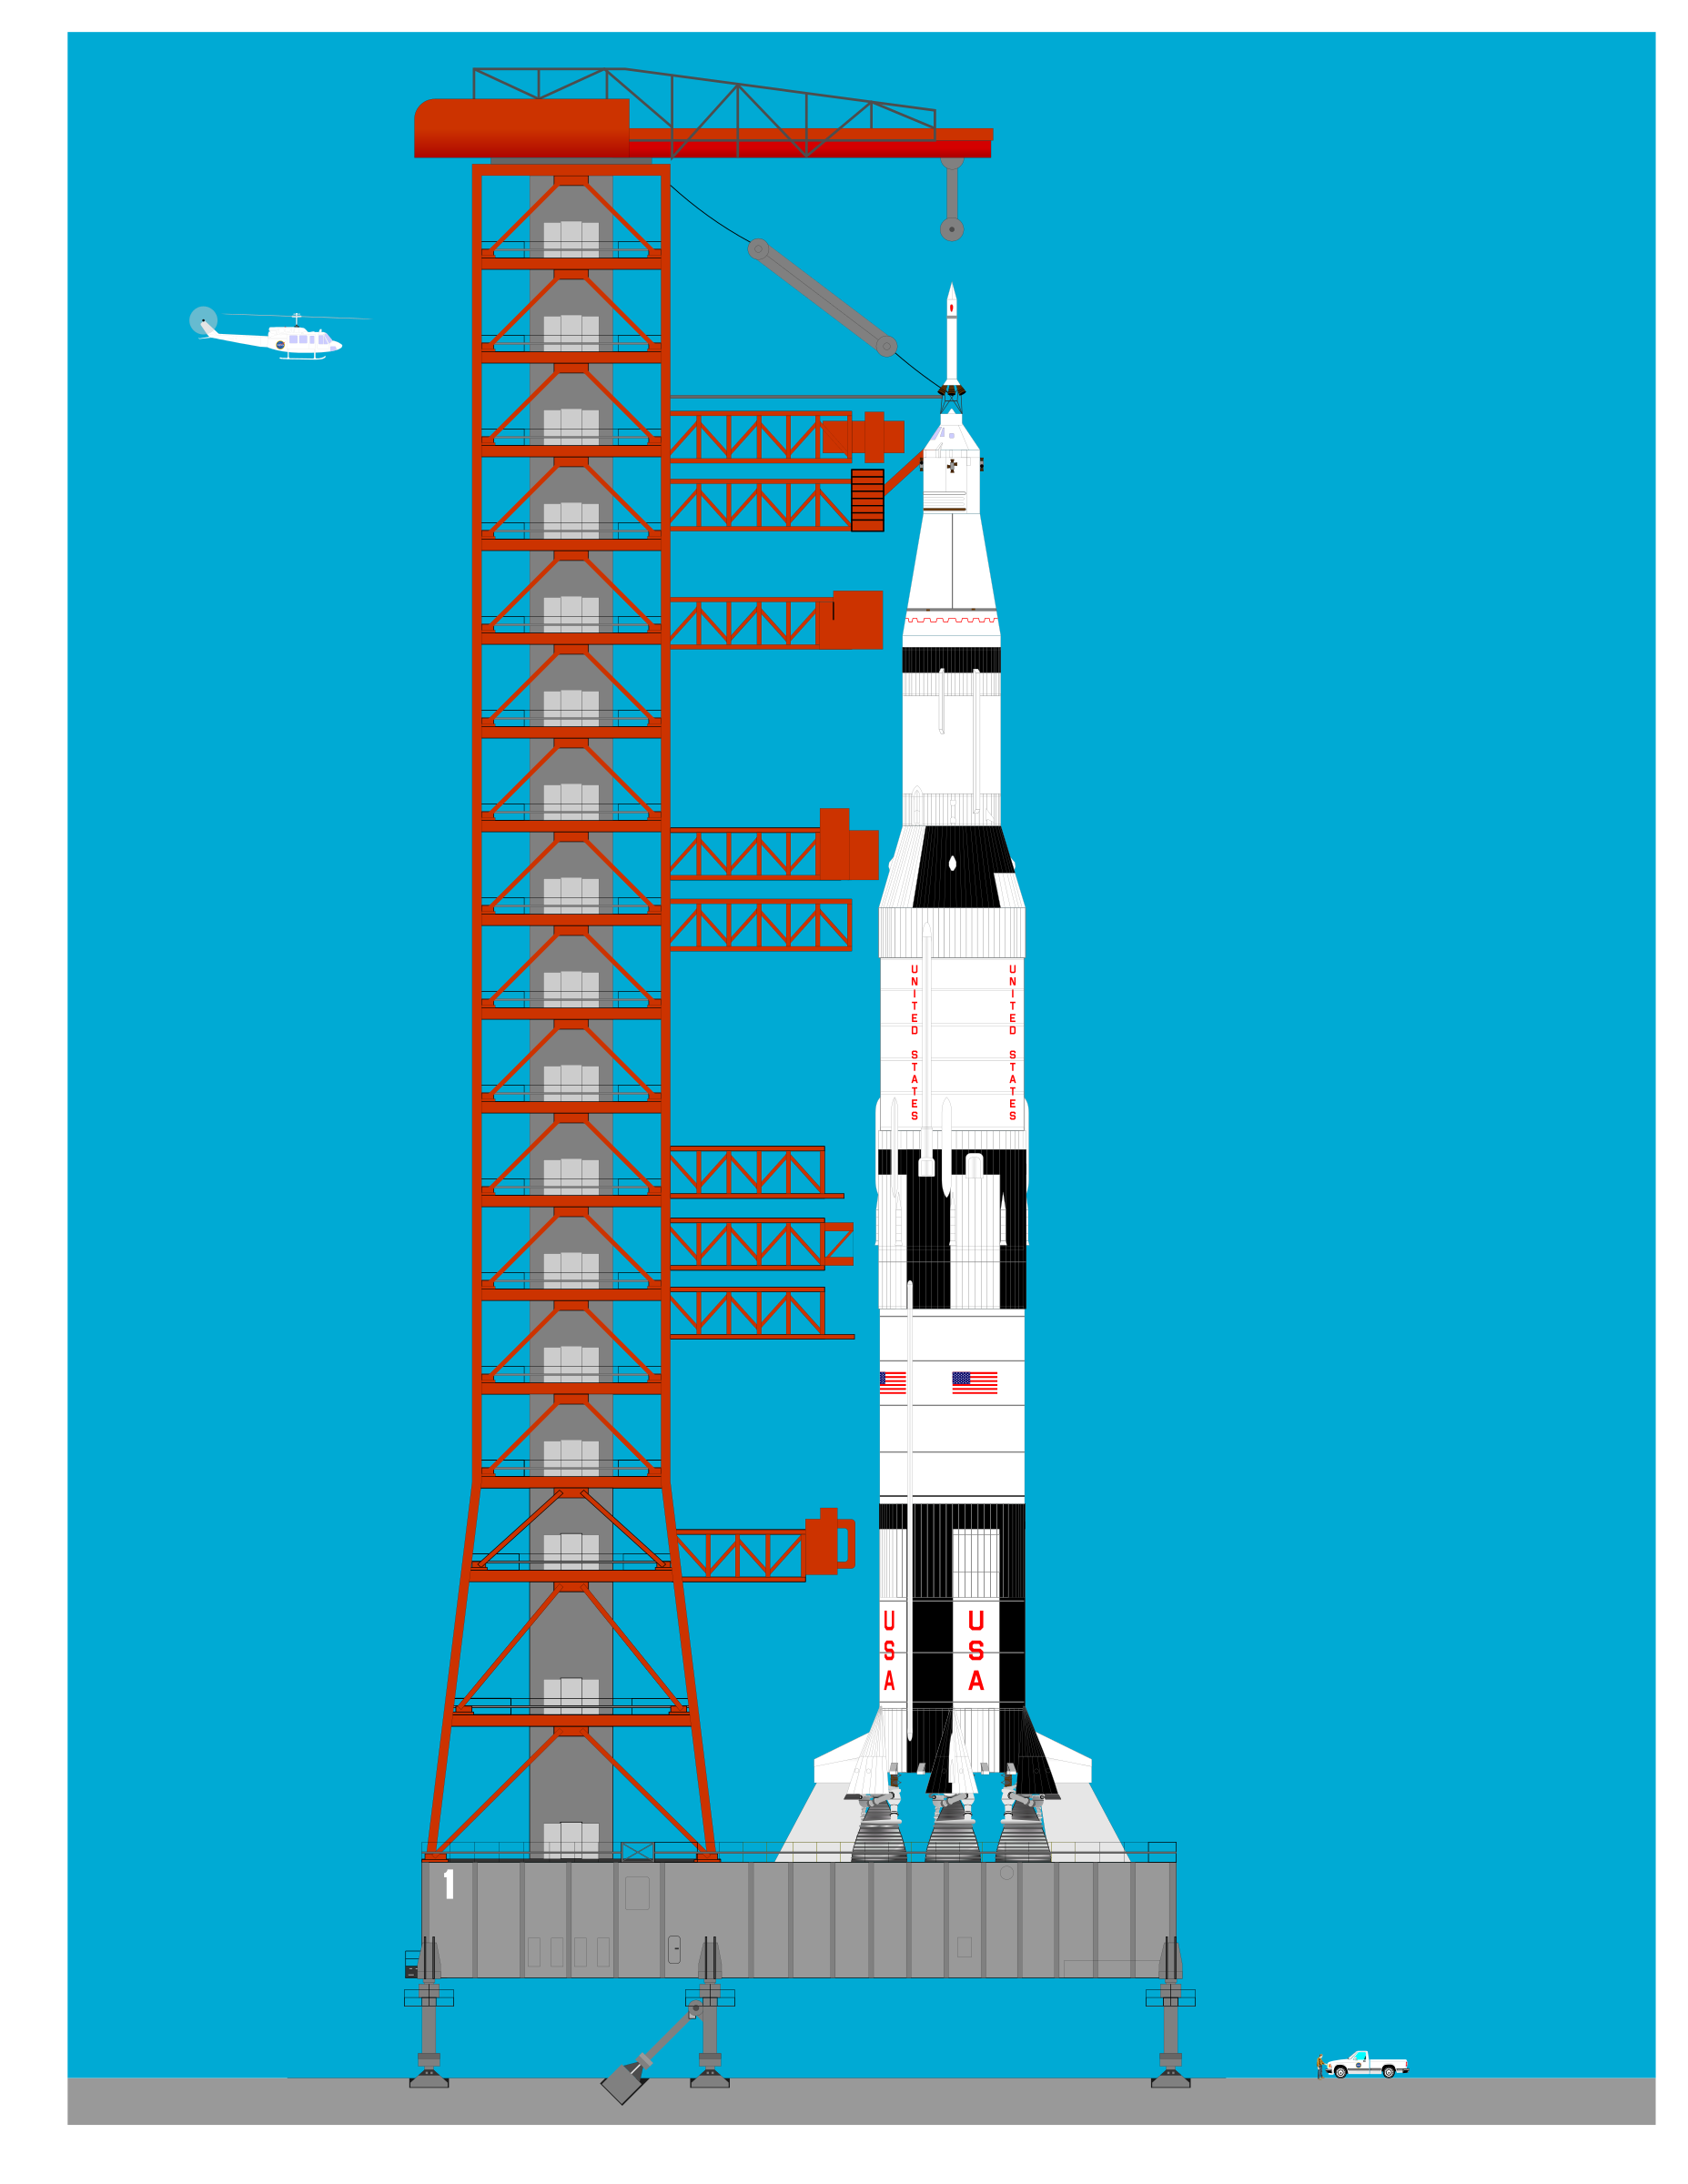 apollo spacecraft clipart - 900×900